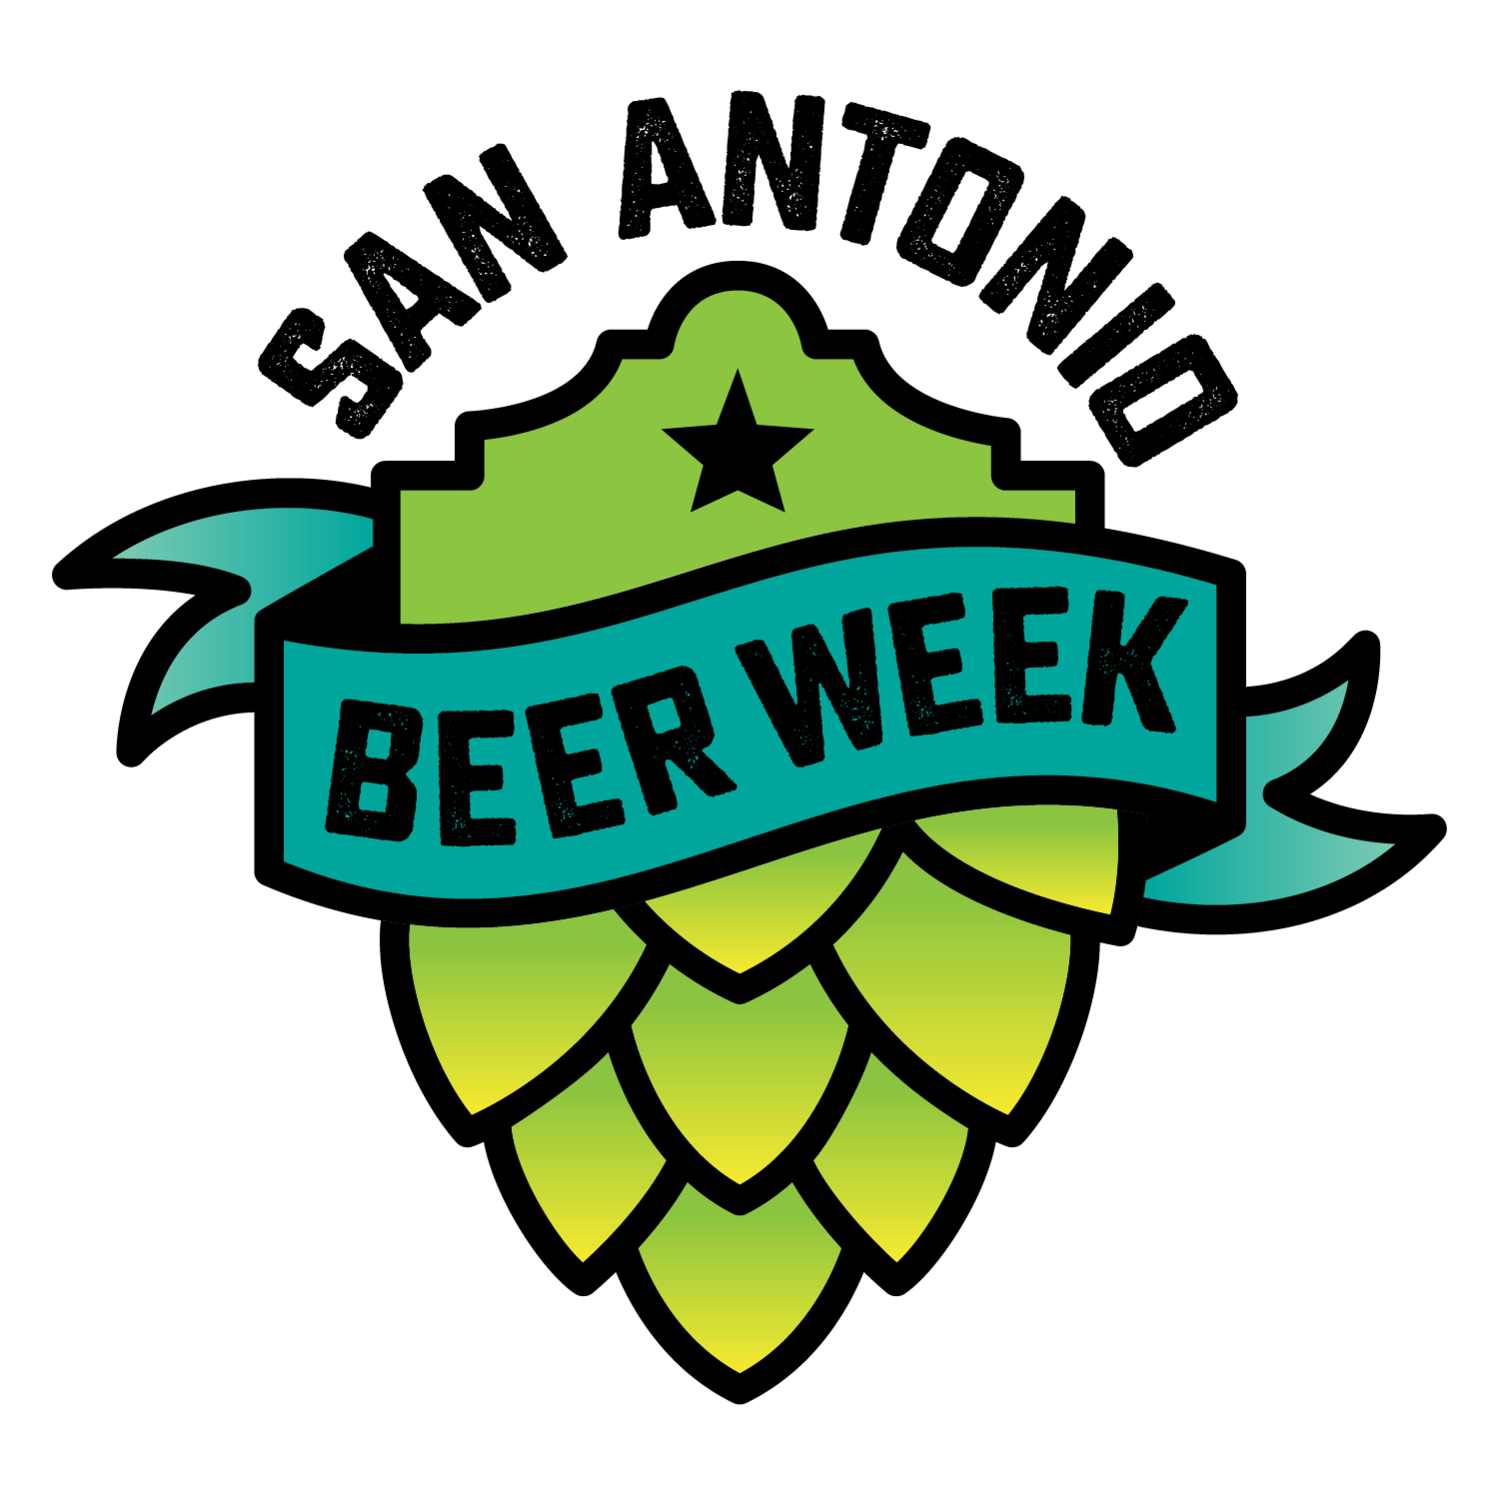 San Antonio Beer Week